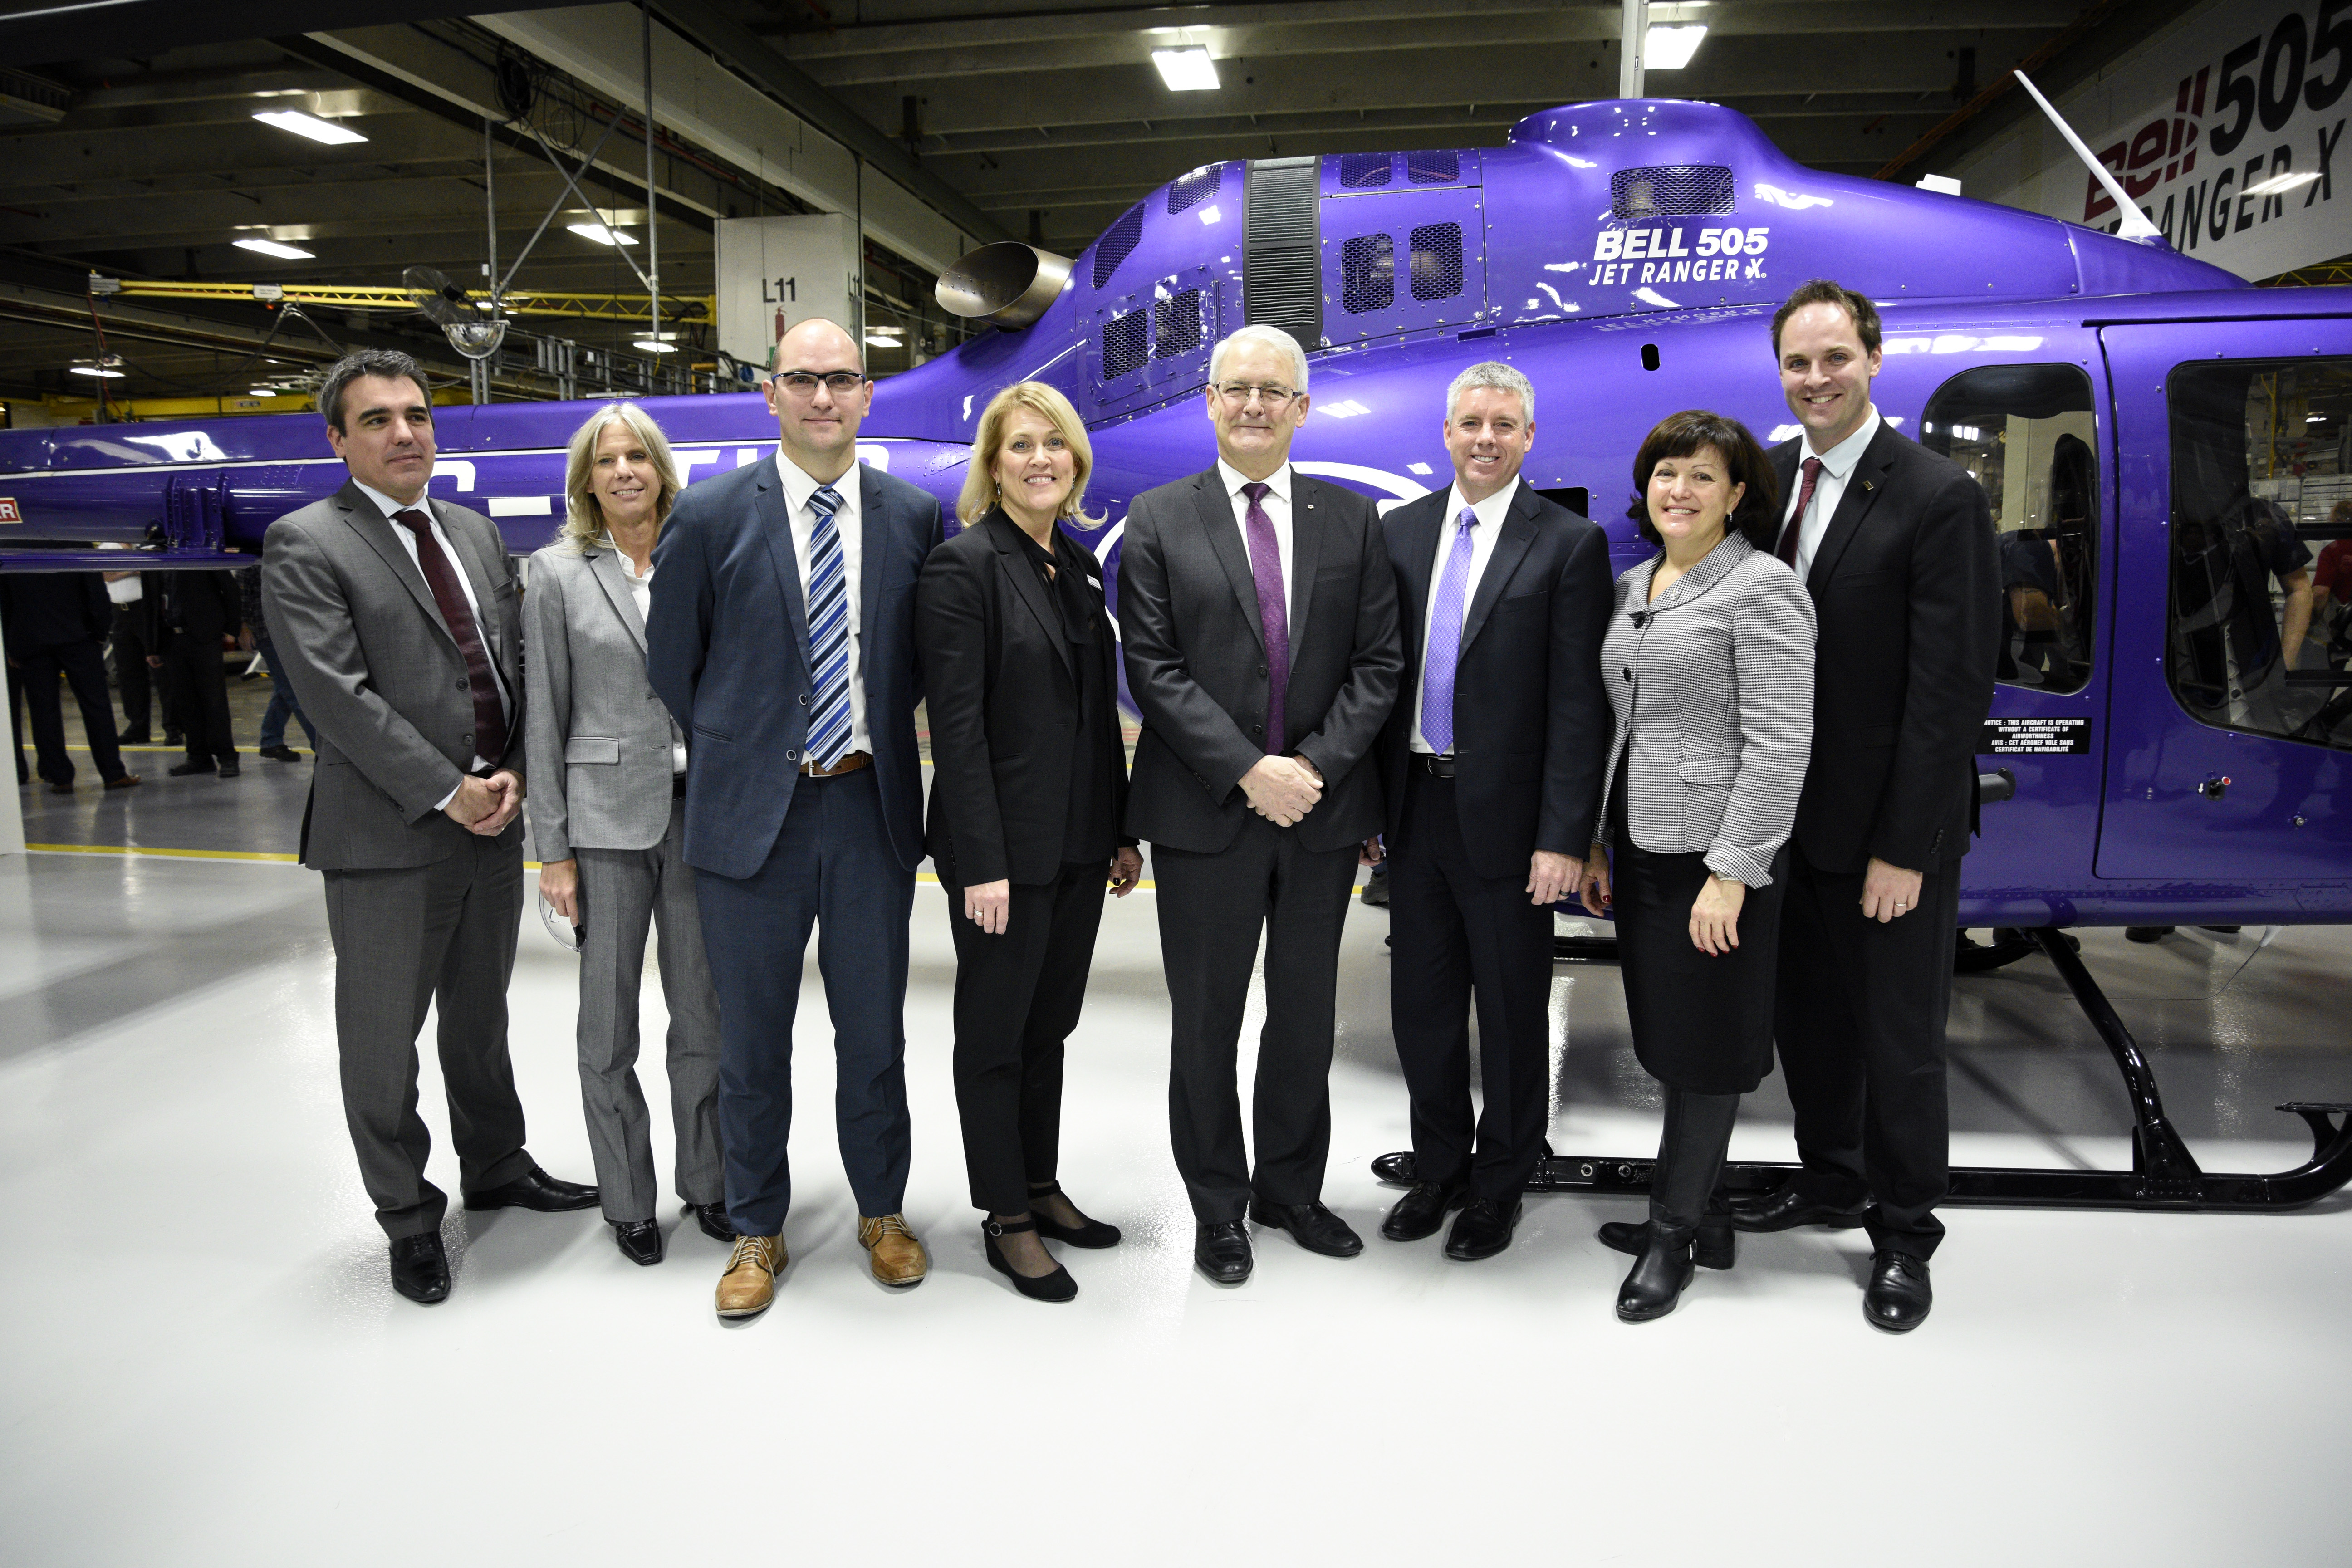 Bell505 Certification Ceremony